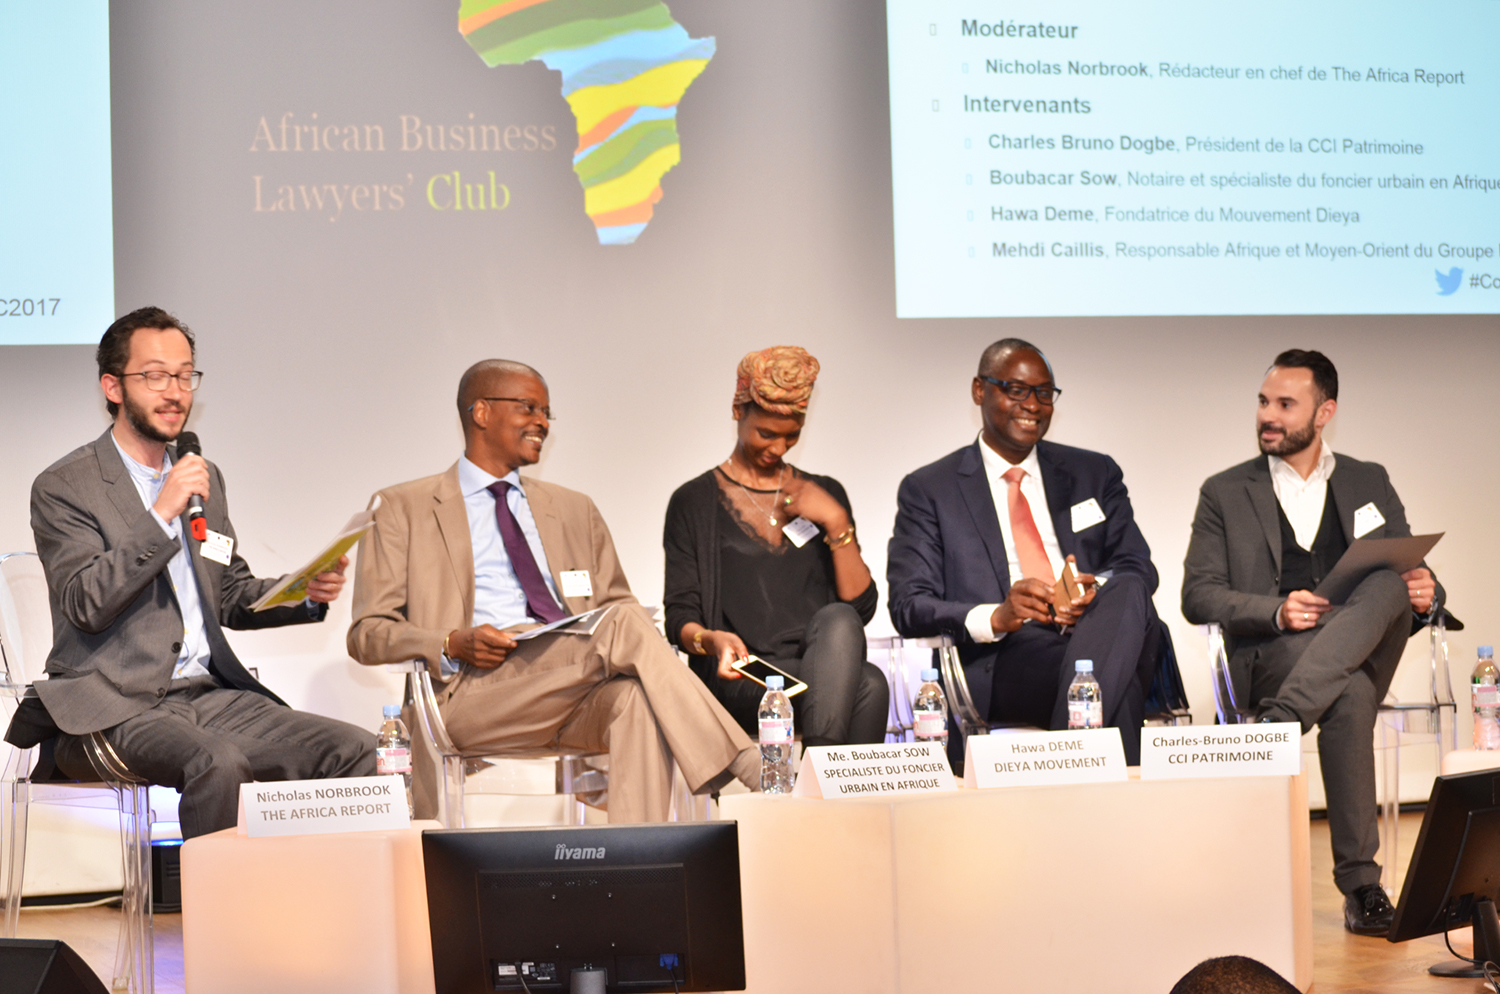 African Business Lawyers' Club